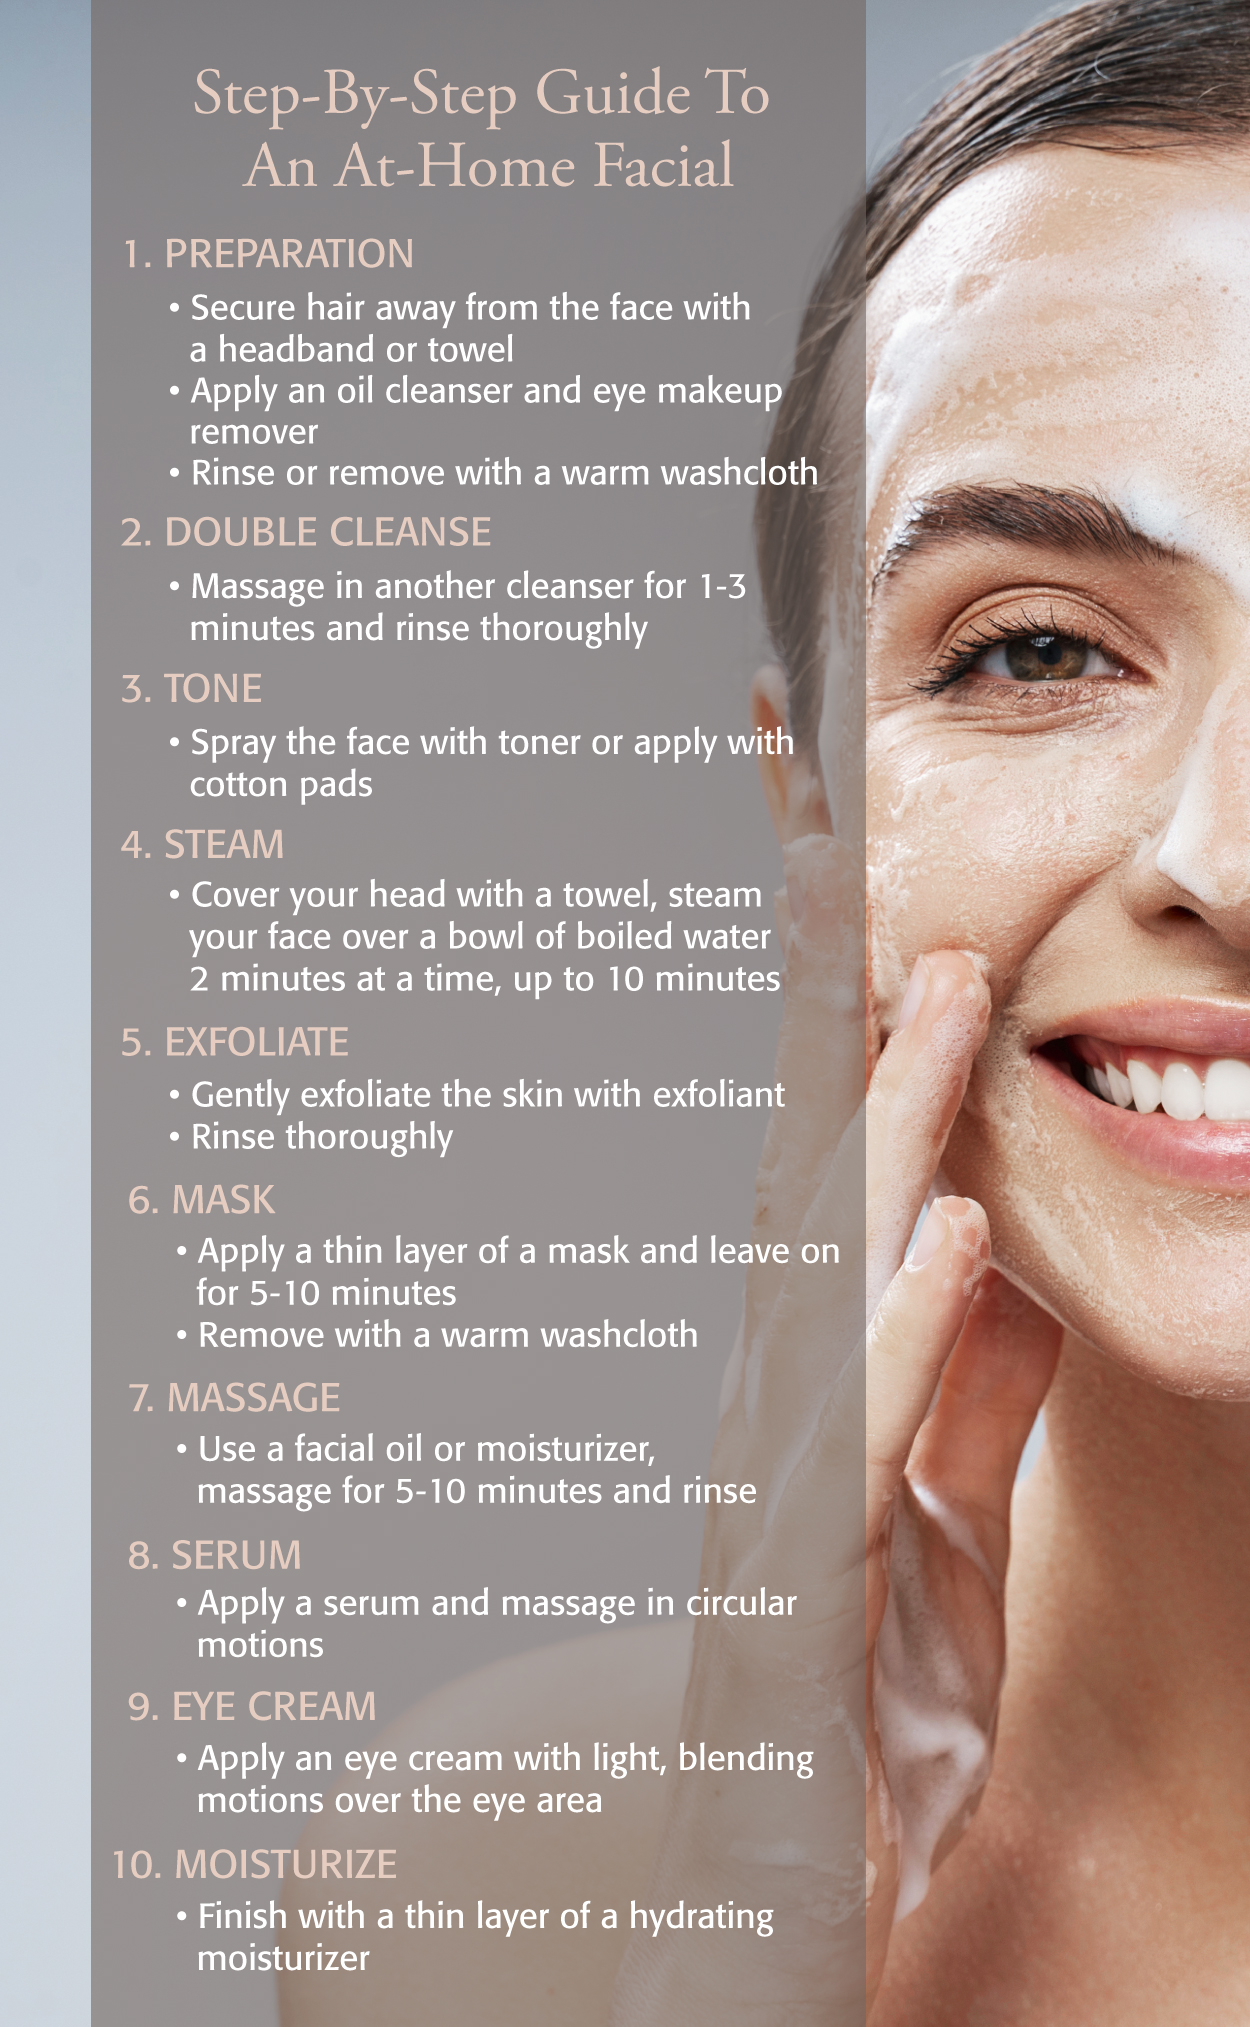 Eminence Organics Facial At Home Infographic